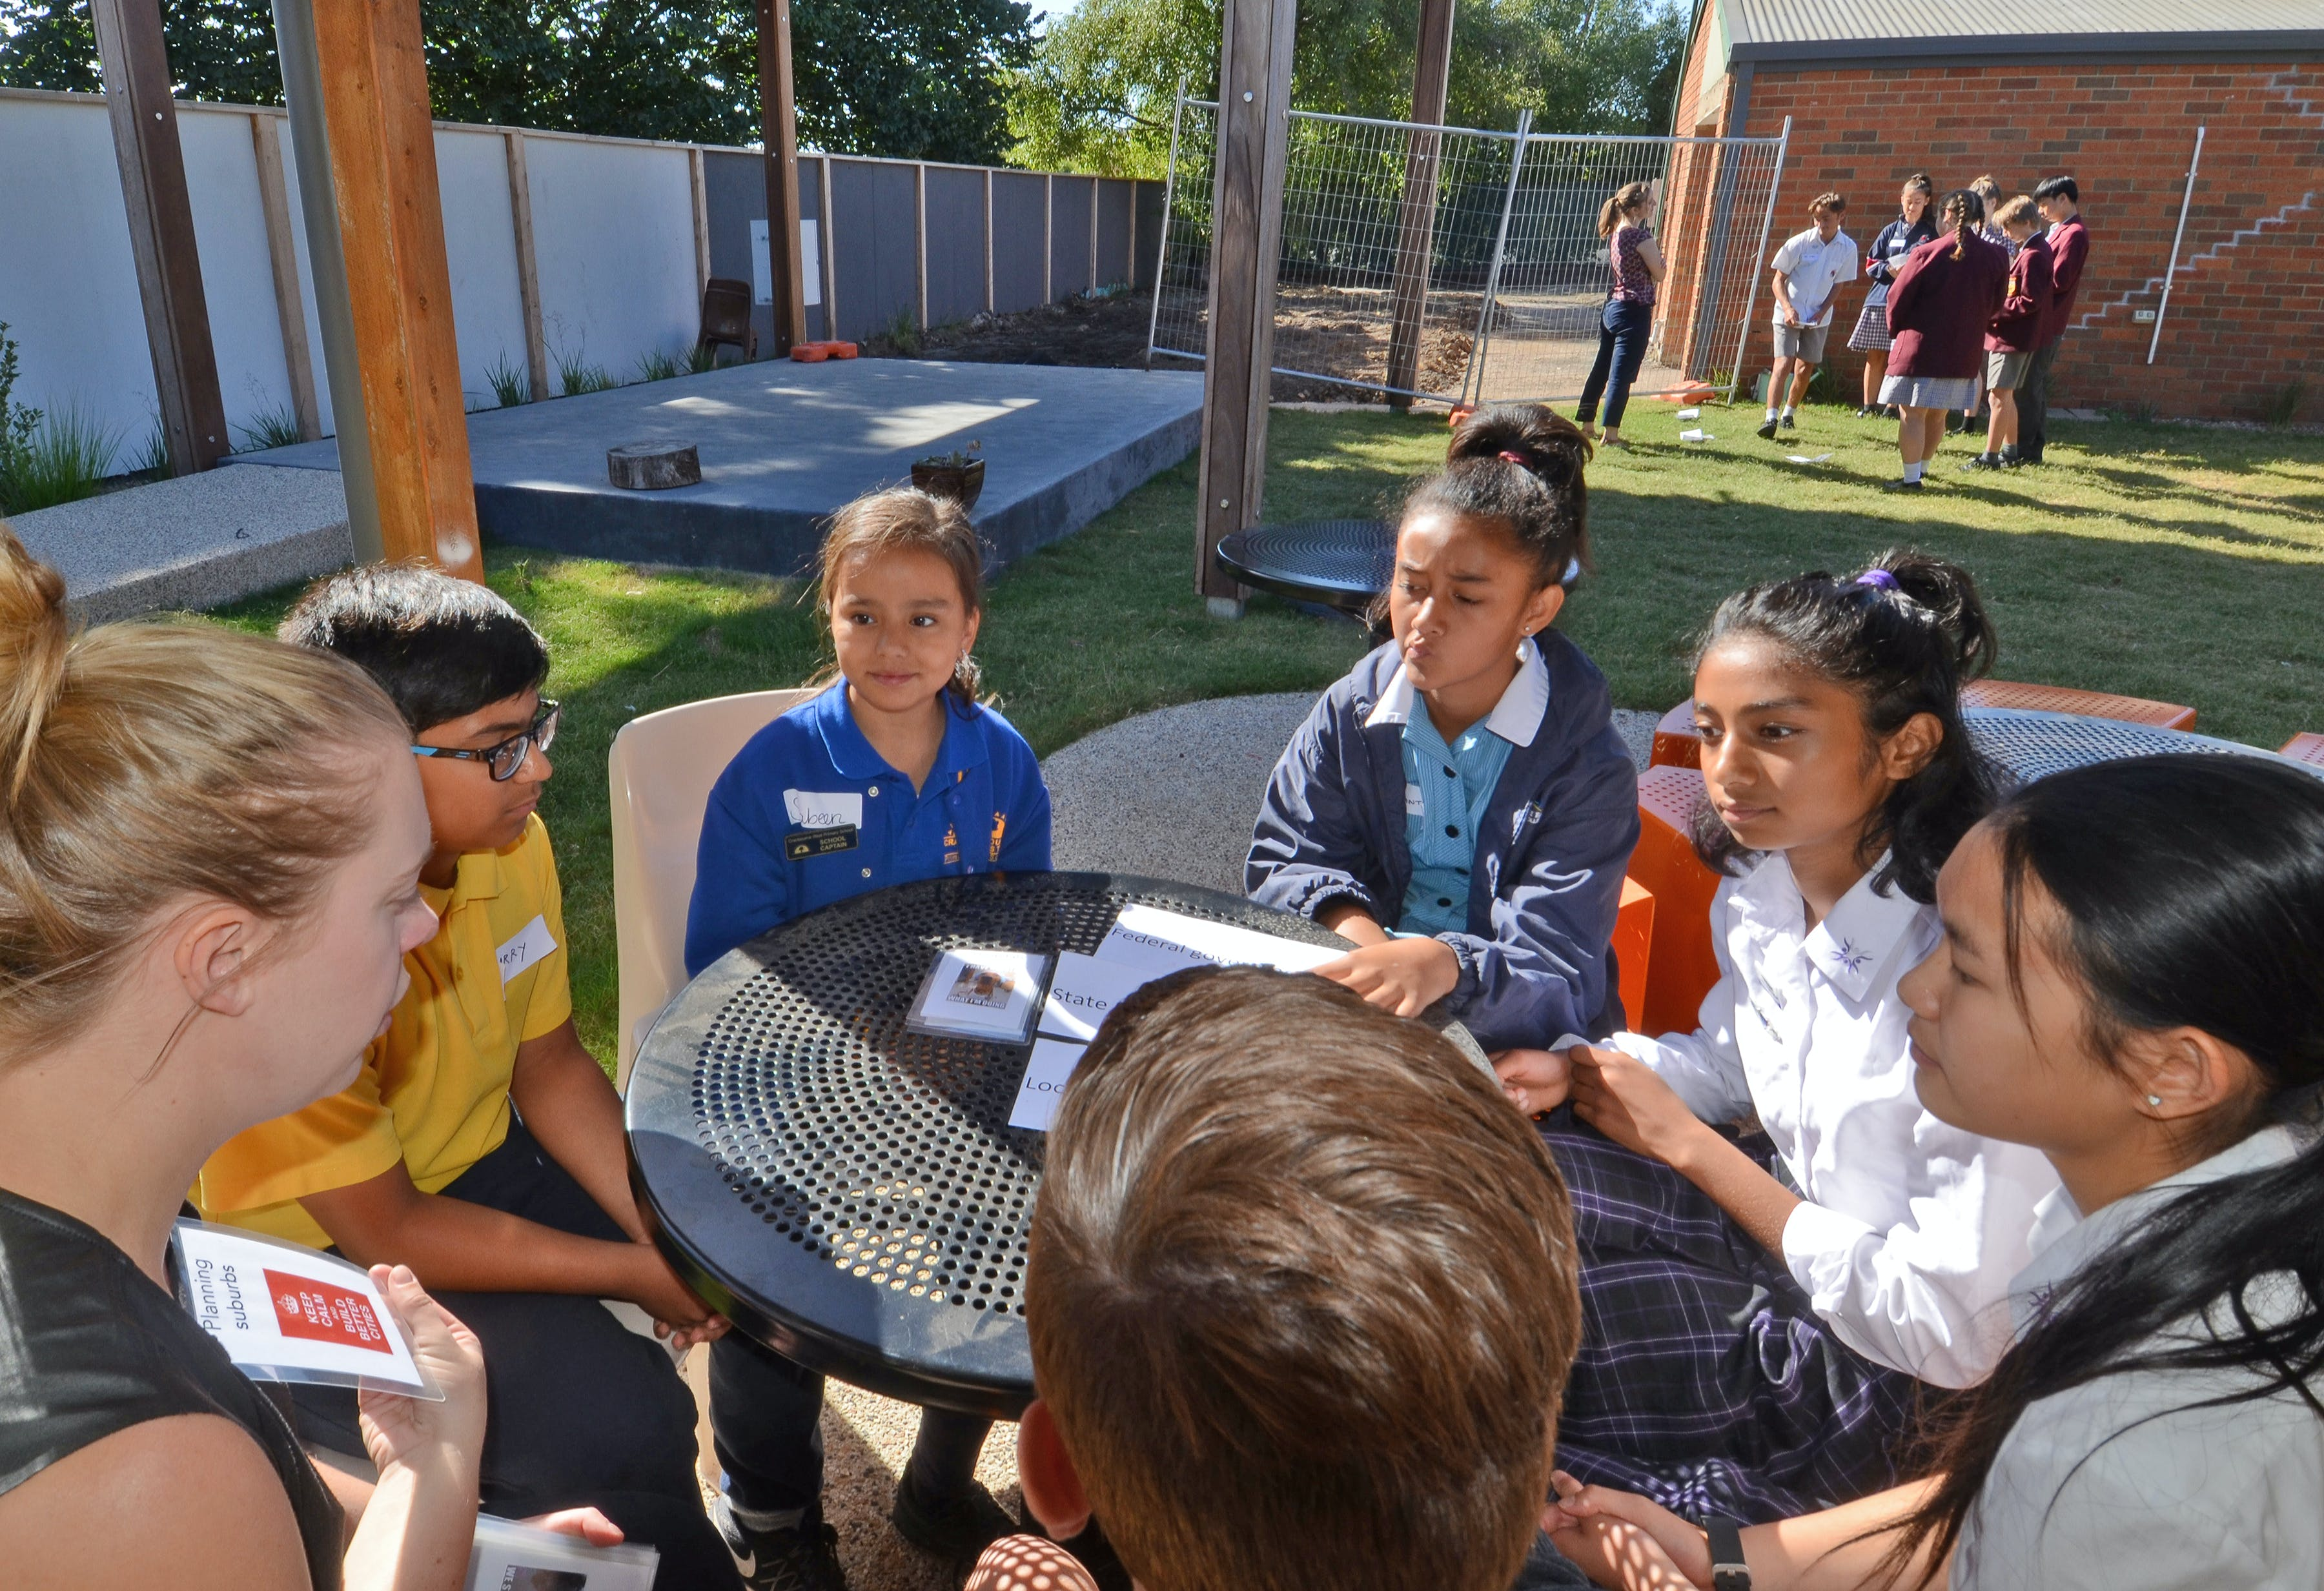 A Youth Panel discussed what was important to them, living and studying in Casey